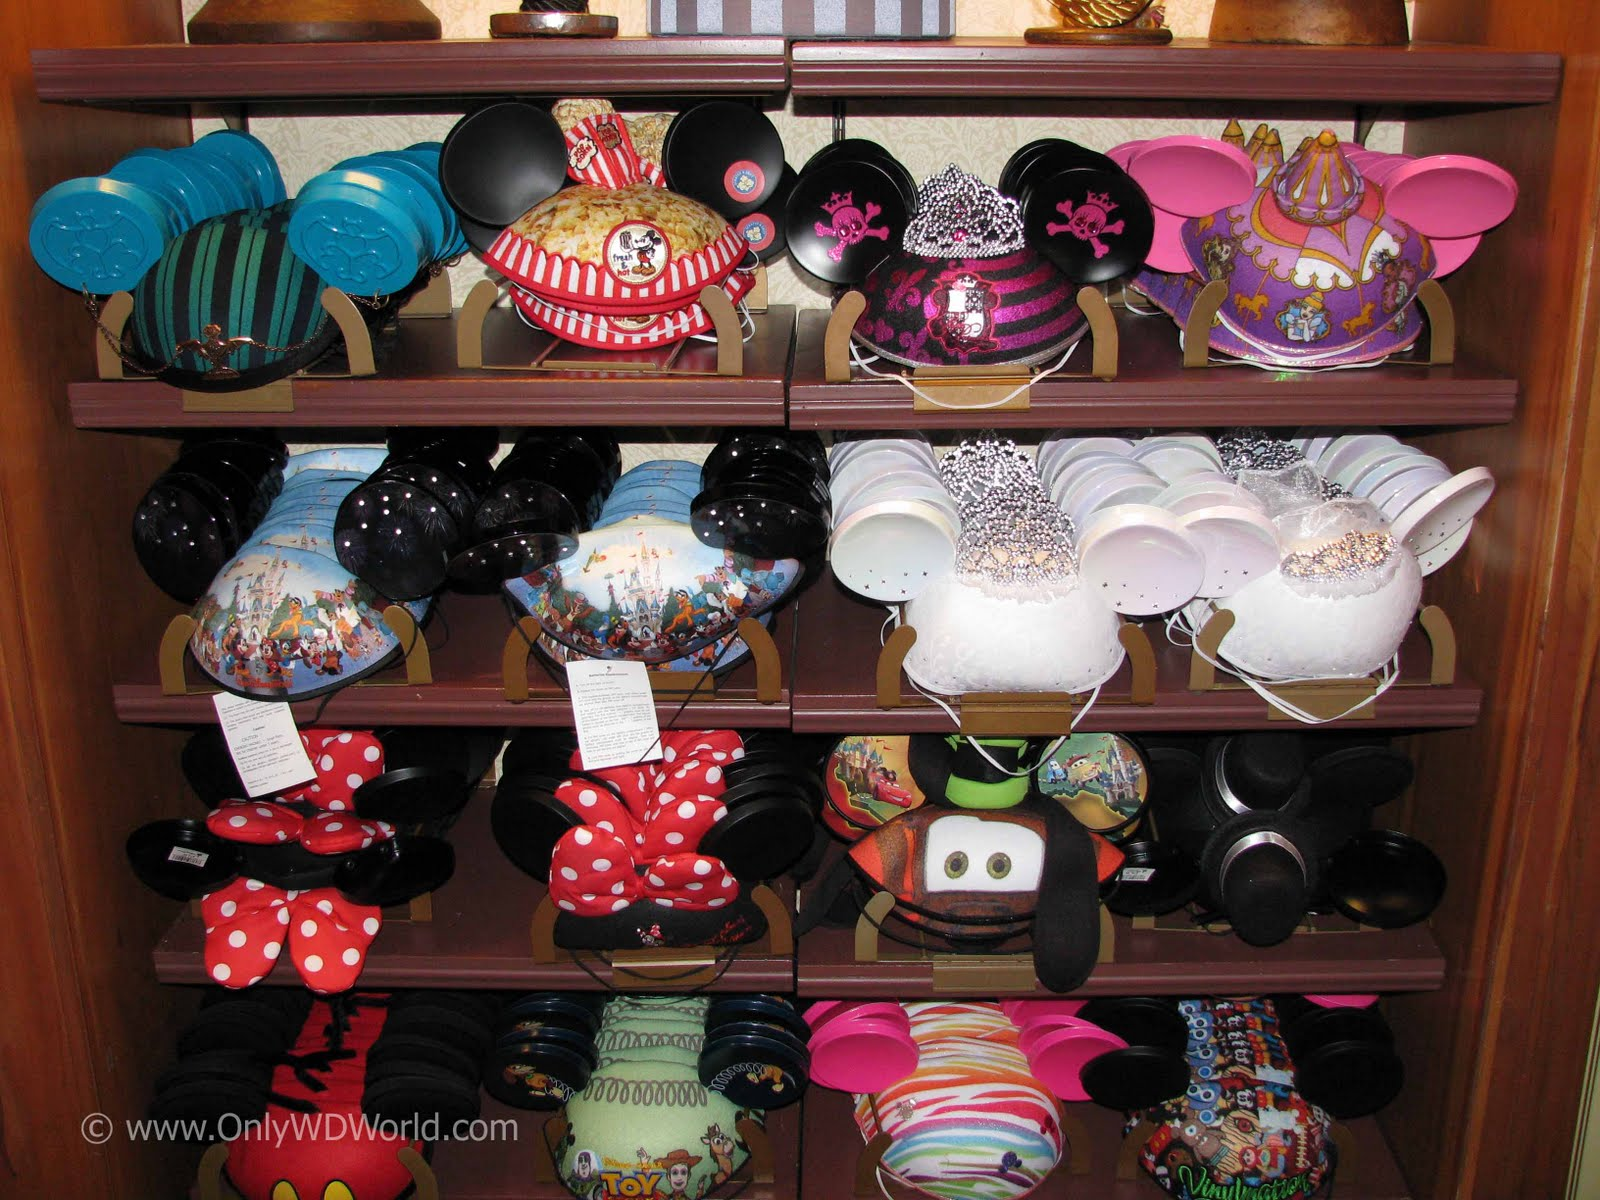 The Mickey Mouse Ear Hats Have